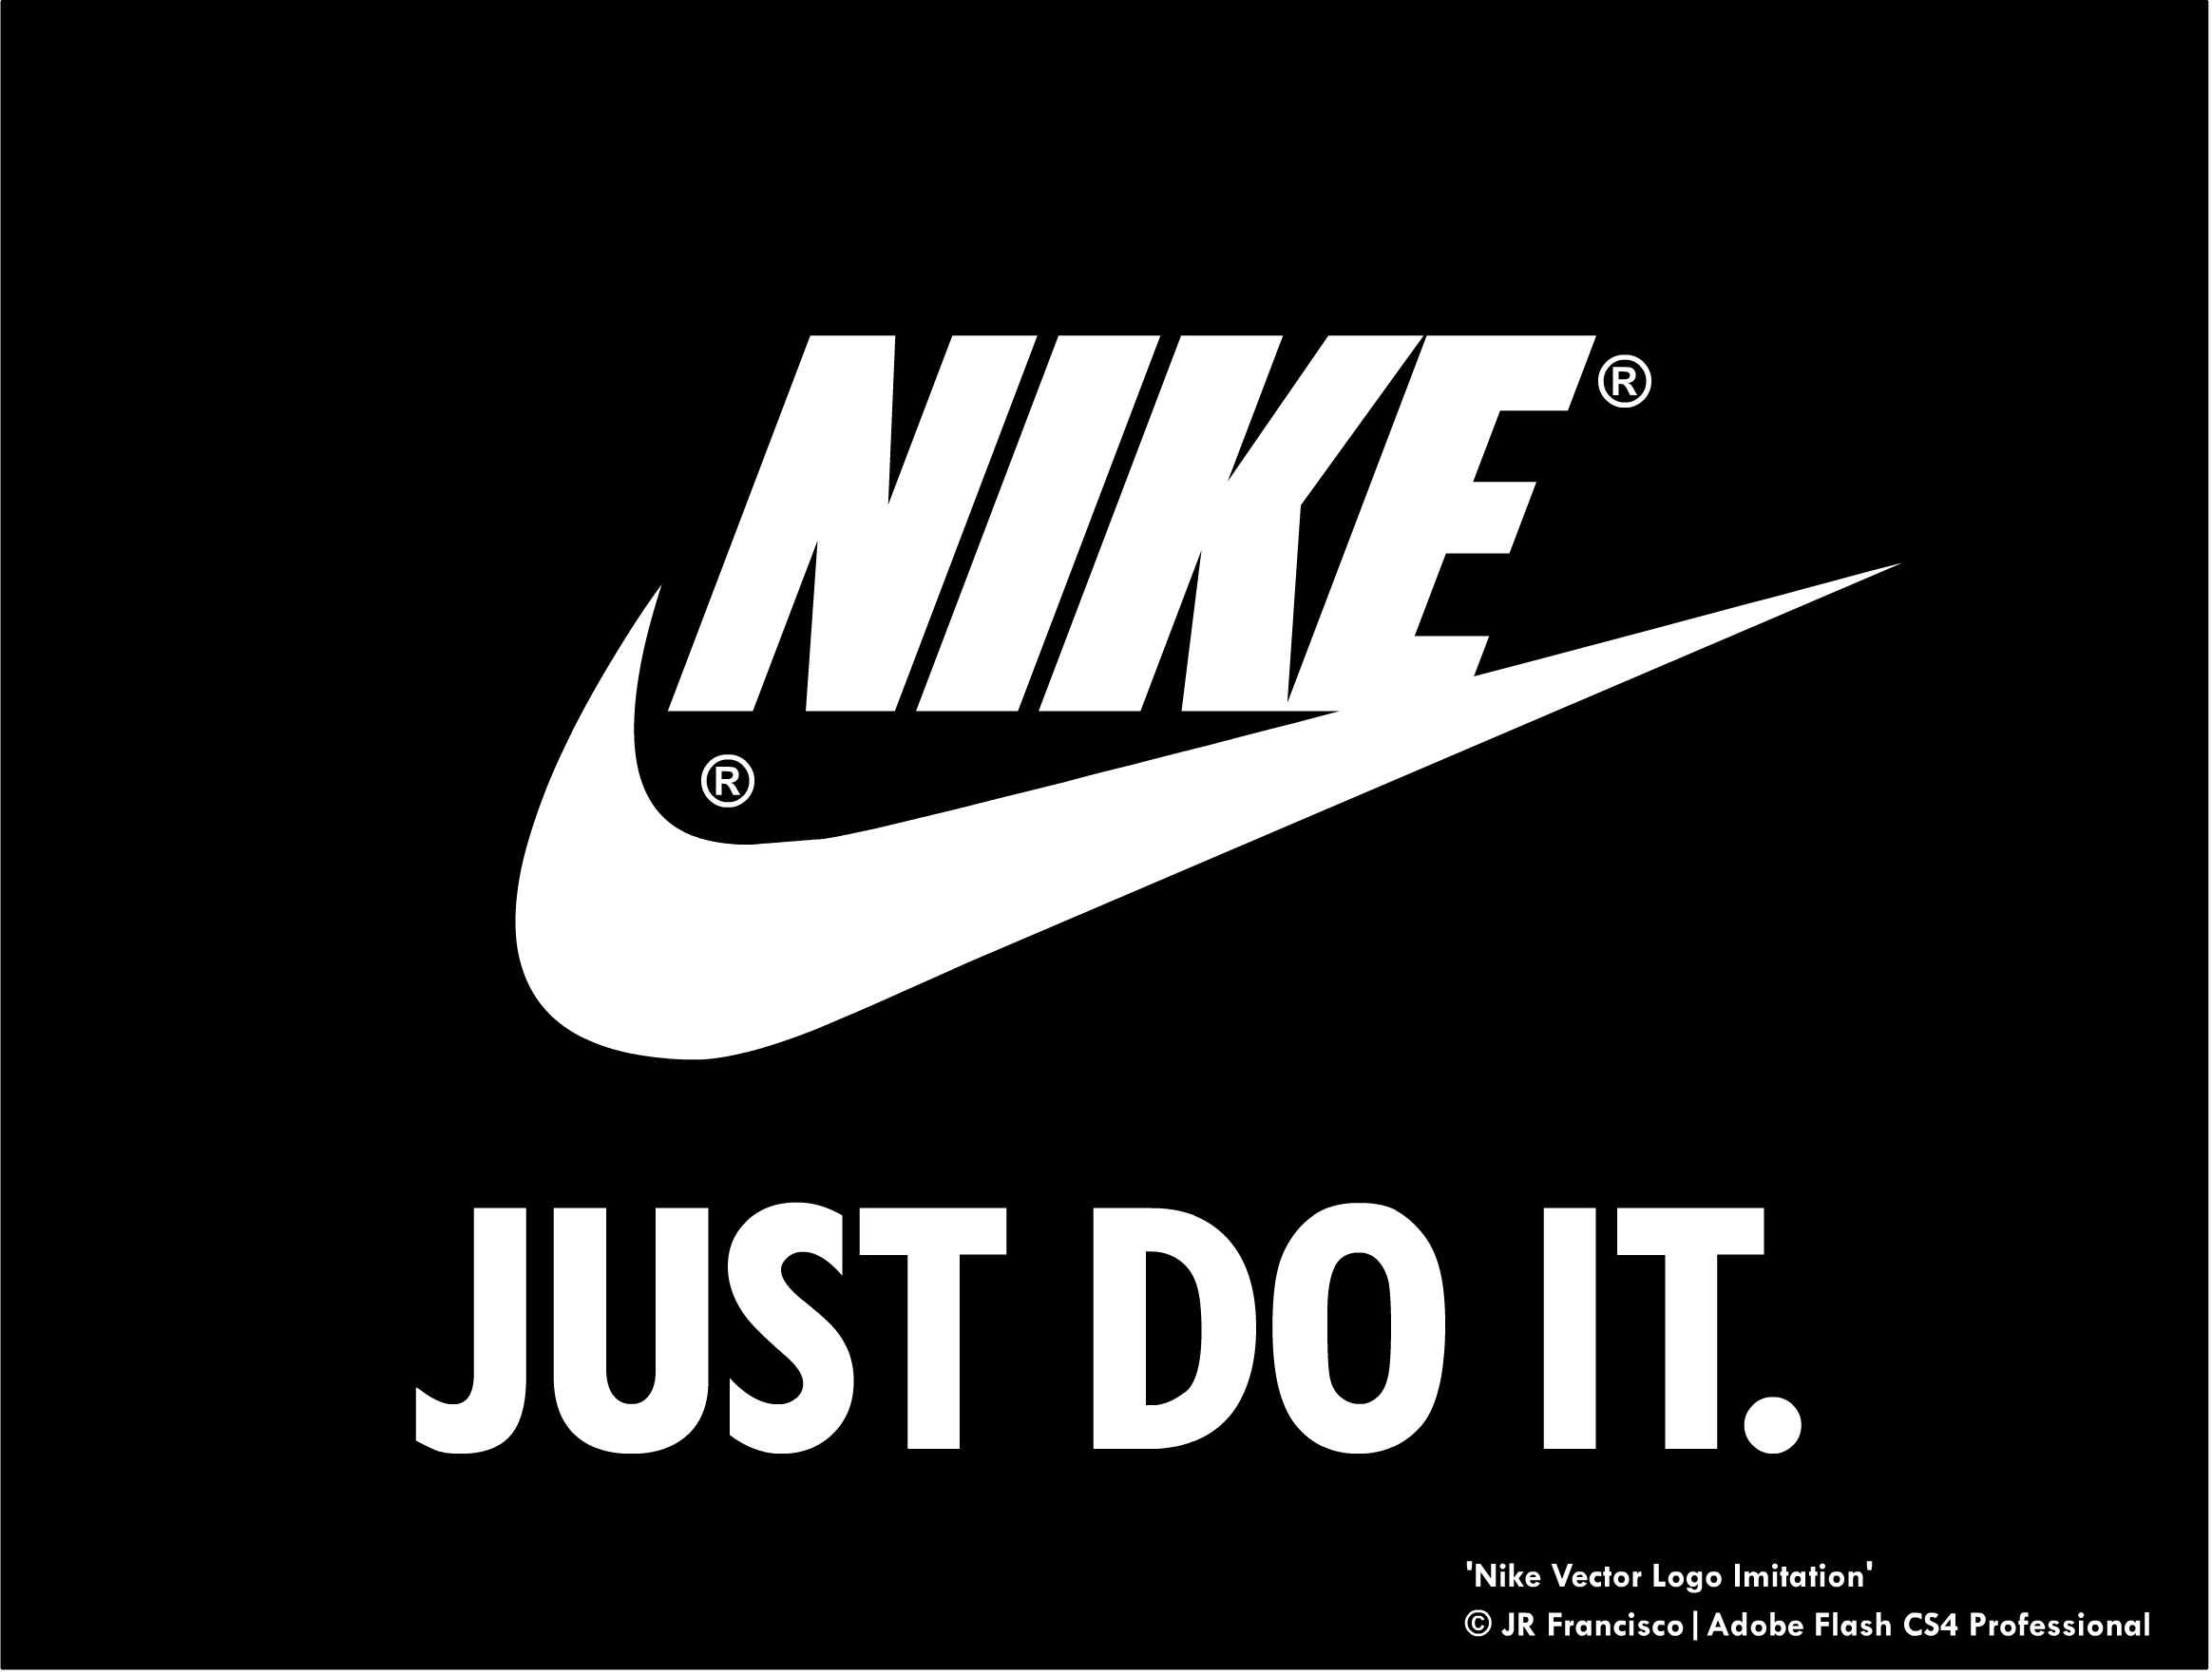 Their Are So Many Slogans Out Their For Example The Slogan For Nike Is Just Do It Nike S Slogan Is So Recognizab Nike Wallpaper Nike Cool Nike Backgrounds